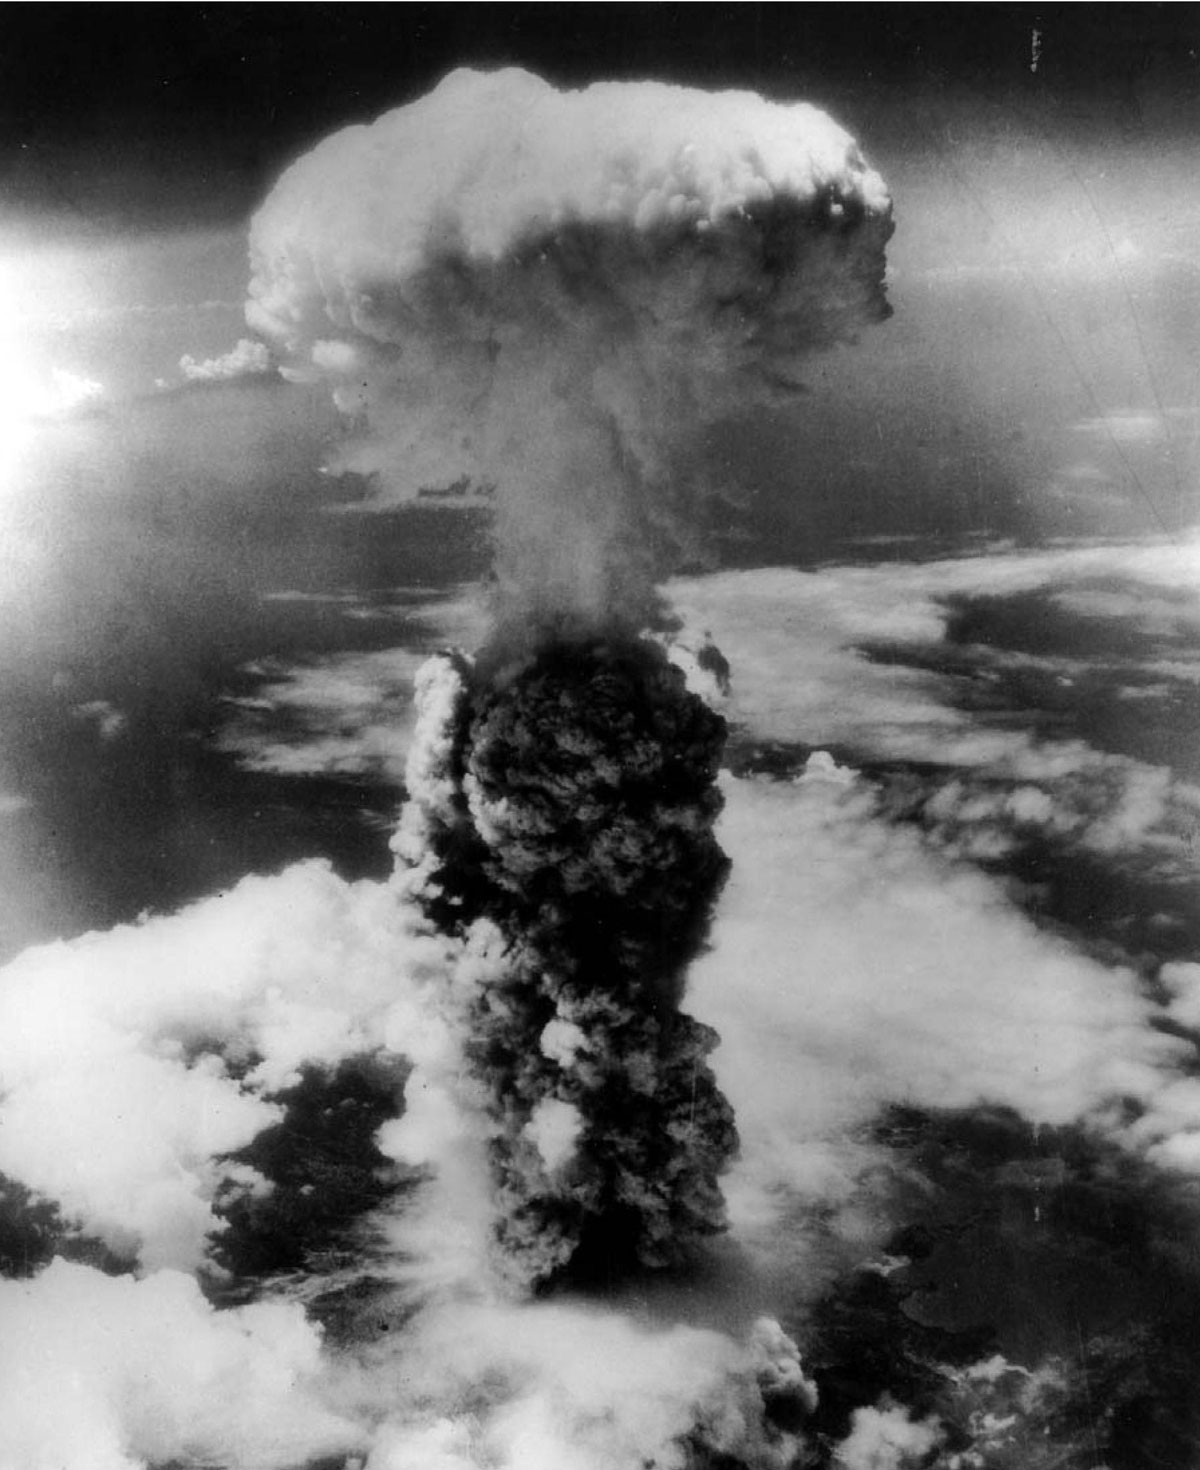 usa atomic bombing on himoshita The fire bombings of the cities had killed far more people than the atomic bombs did, but the atomic bombs had become a change in quantity that was a change in quality even at the very end, it was only the direct intervention of the emperor who only just barely prevailed over the military who wanted to fight on.